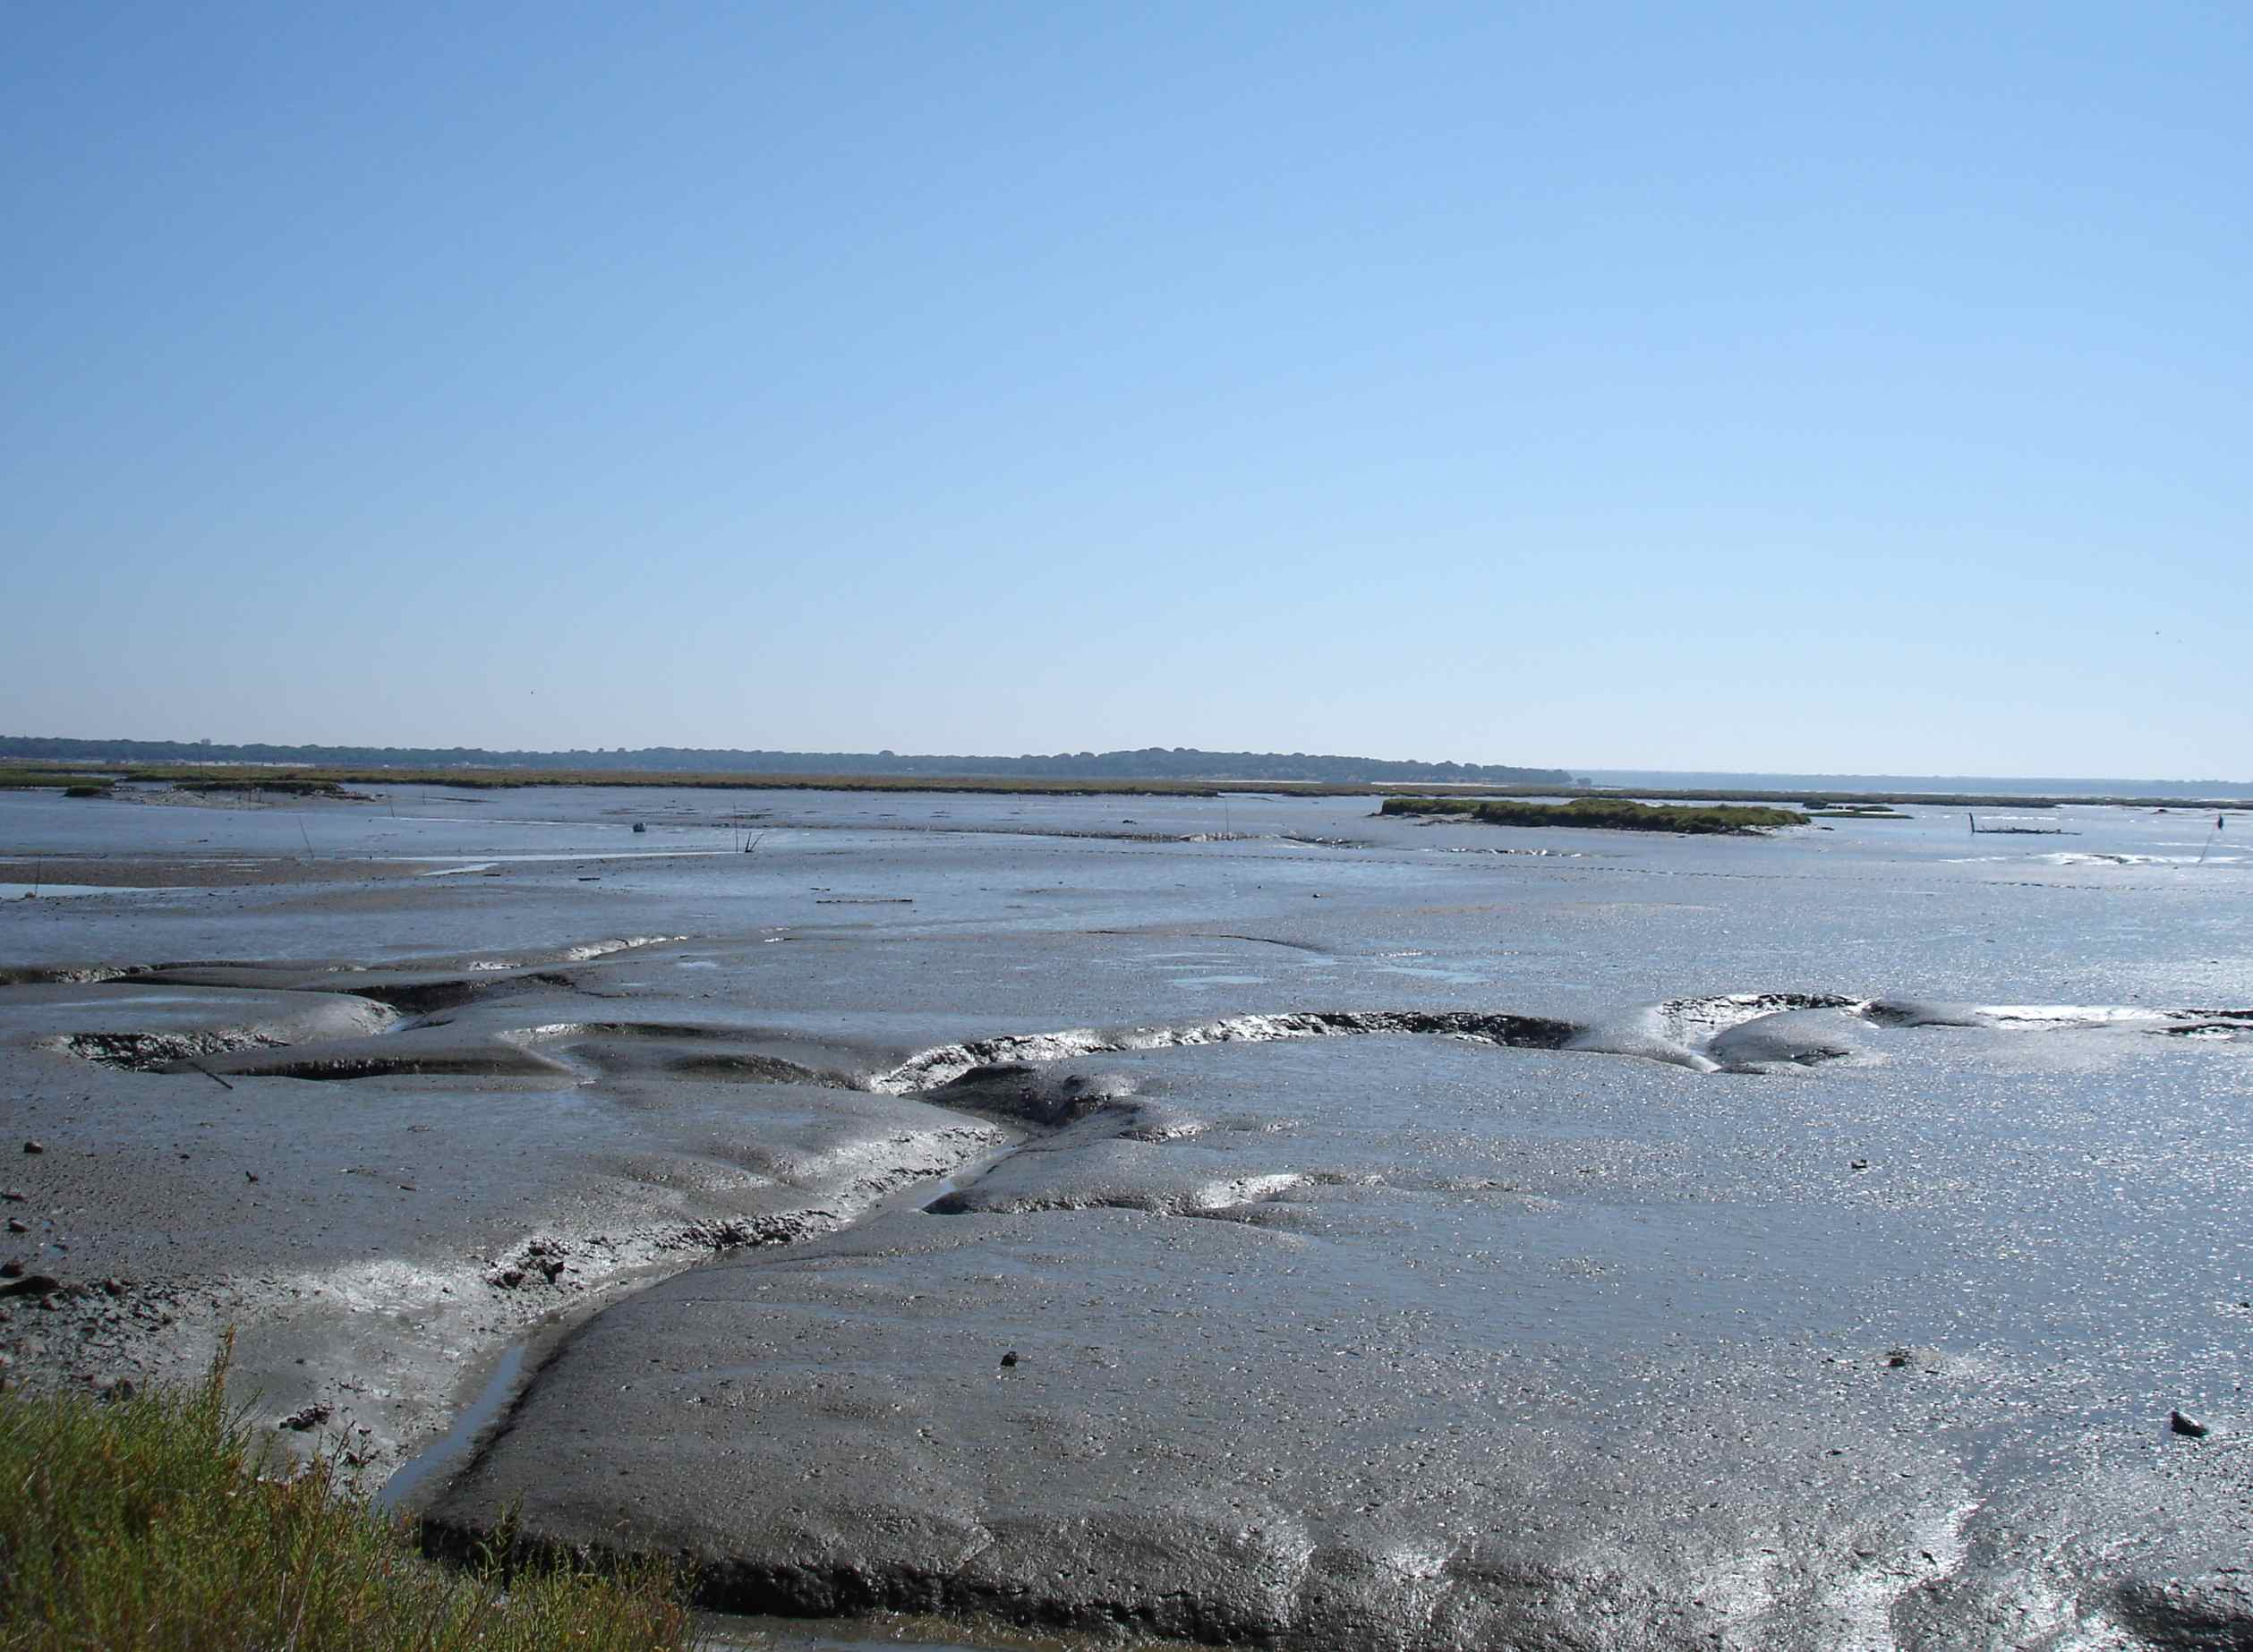 Figure 102F - Present day mud flats rich in burrowing animals (Sado River Estuary, Portugal).